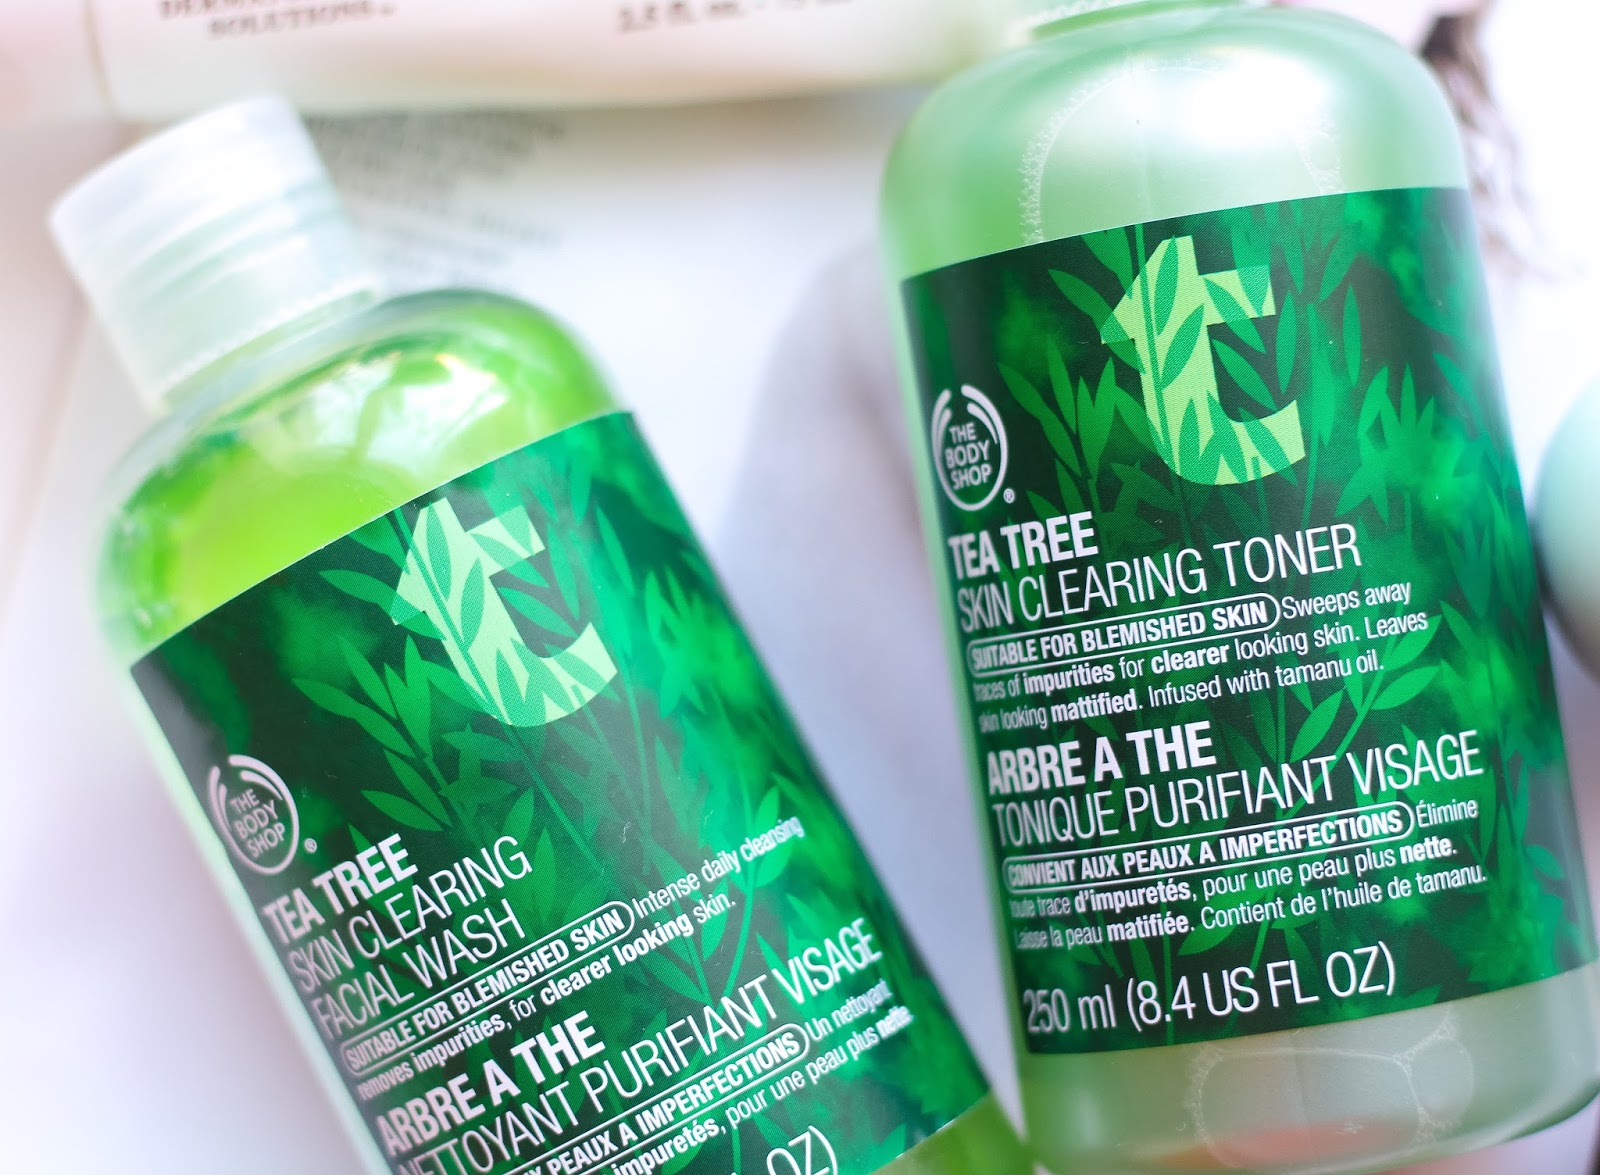 The Body Shop, The Body Shop Tea Tree Range, Tea Tree Skin Clearing Facial Wash, Tea Tree Skin Clearing Toner